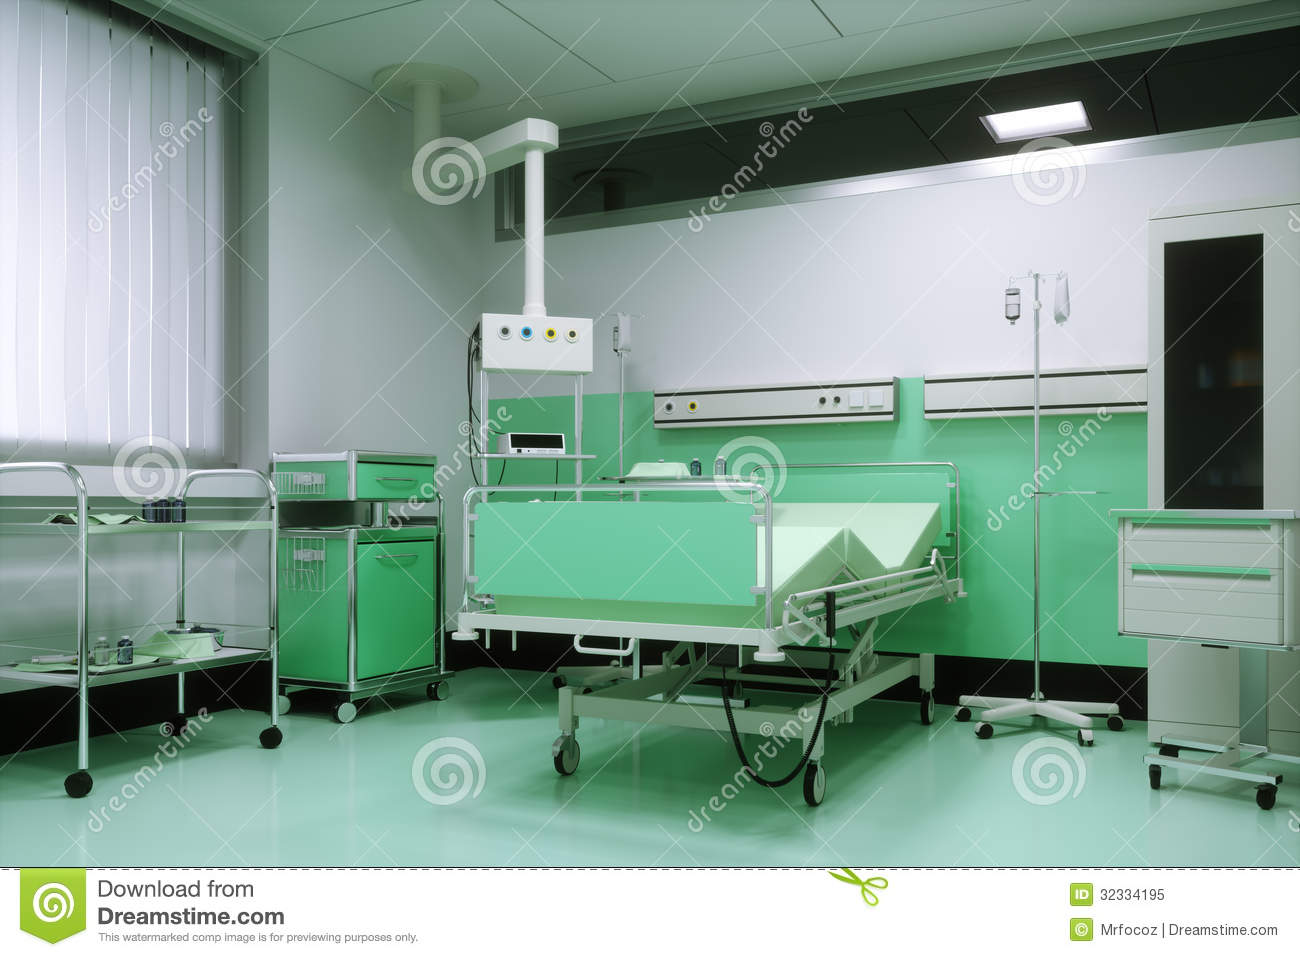 Empty Bed In A Hospital Room Royalty Free Stock Photo